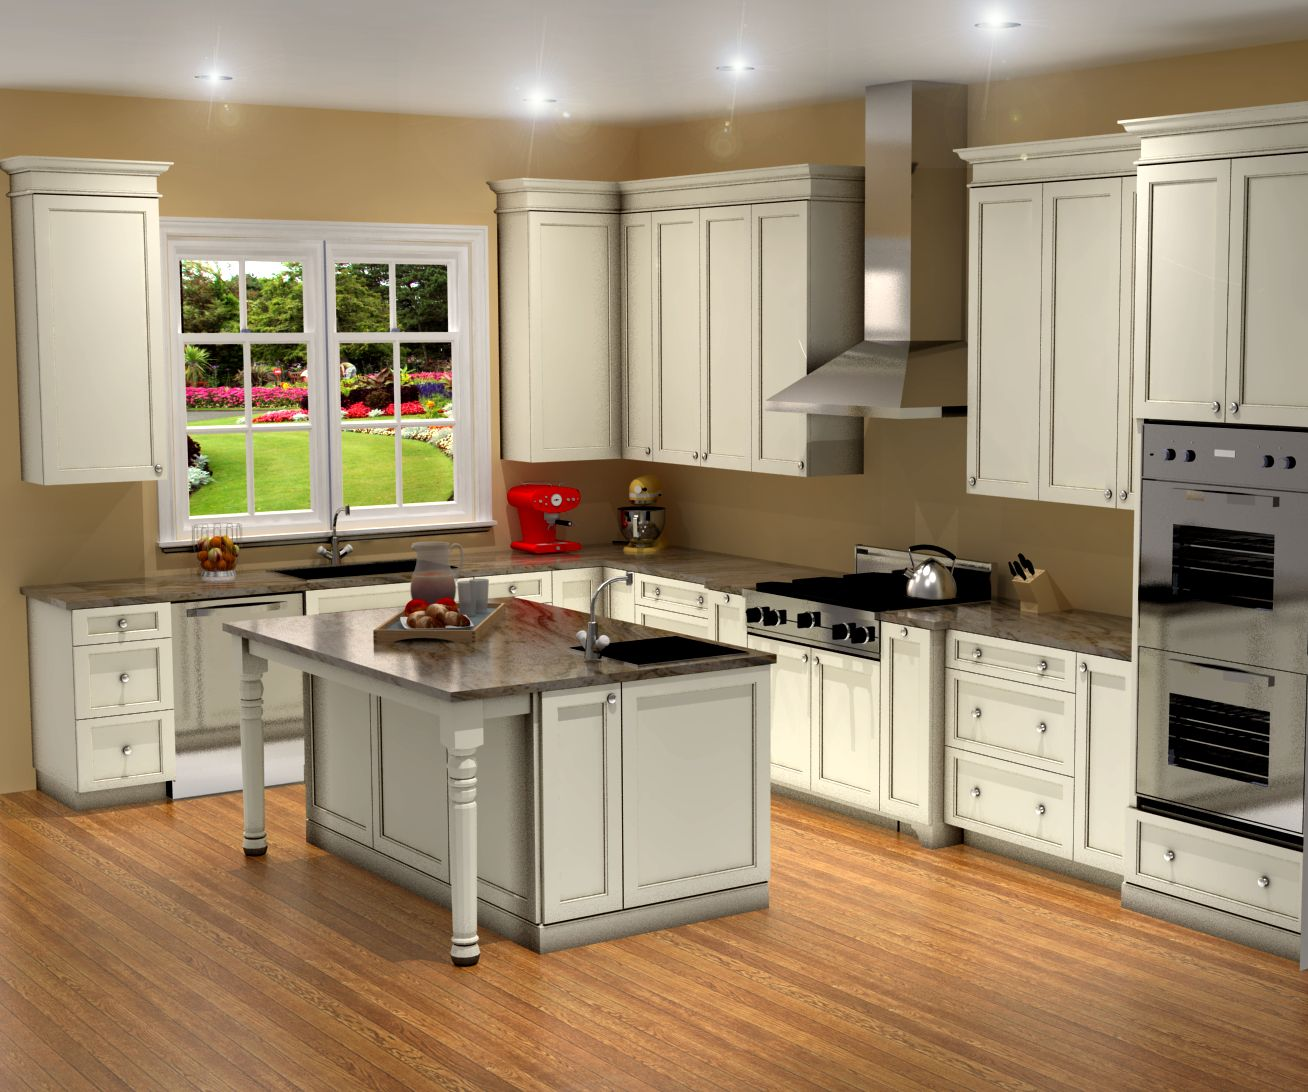 Traditional white kitchen design 3d rendering nick for Kichan dizain